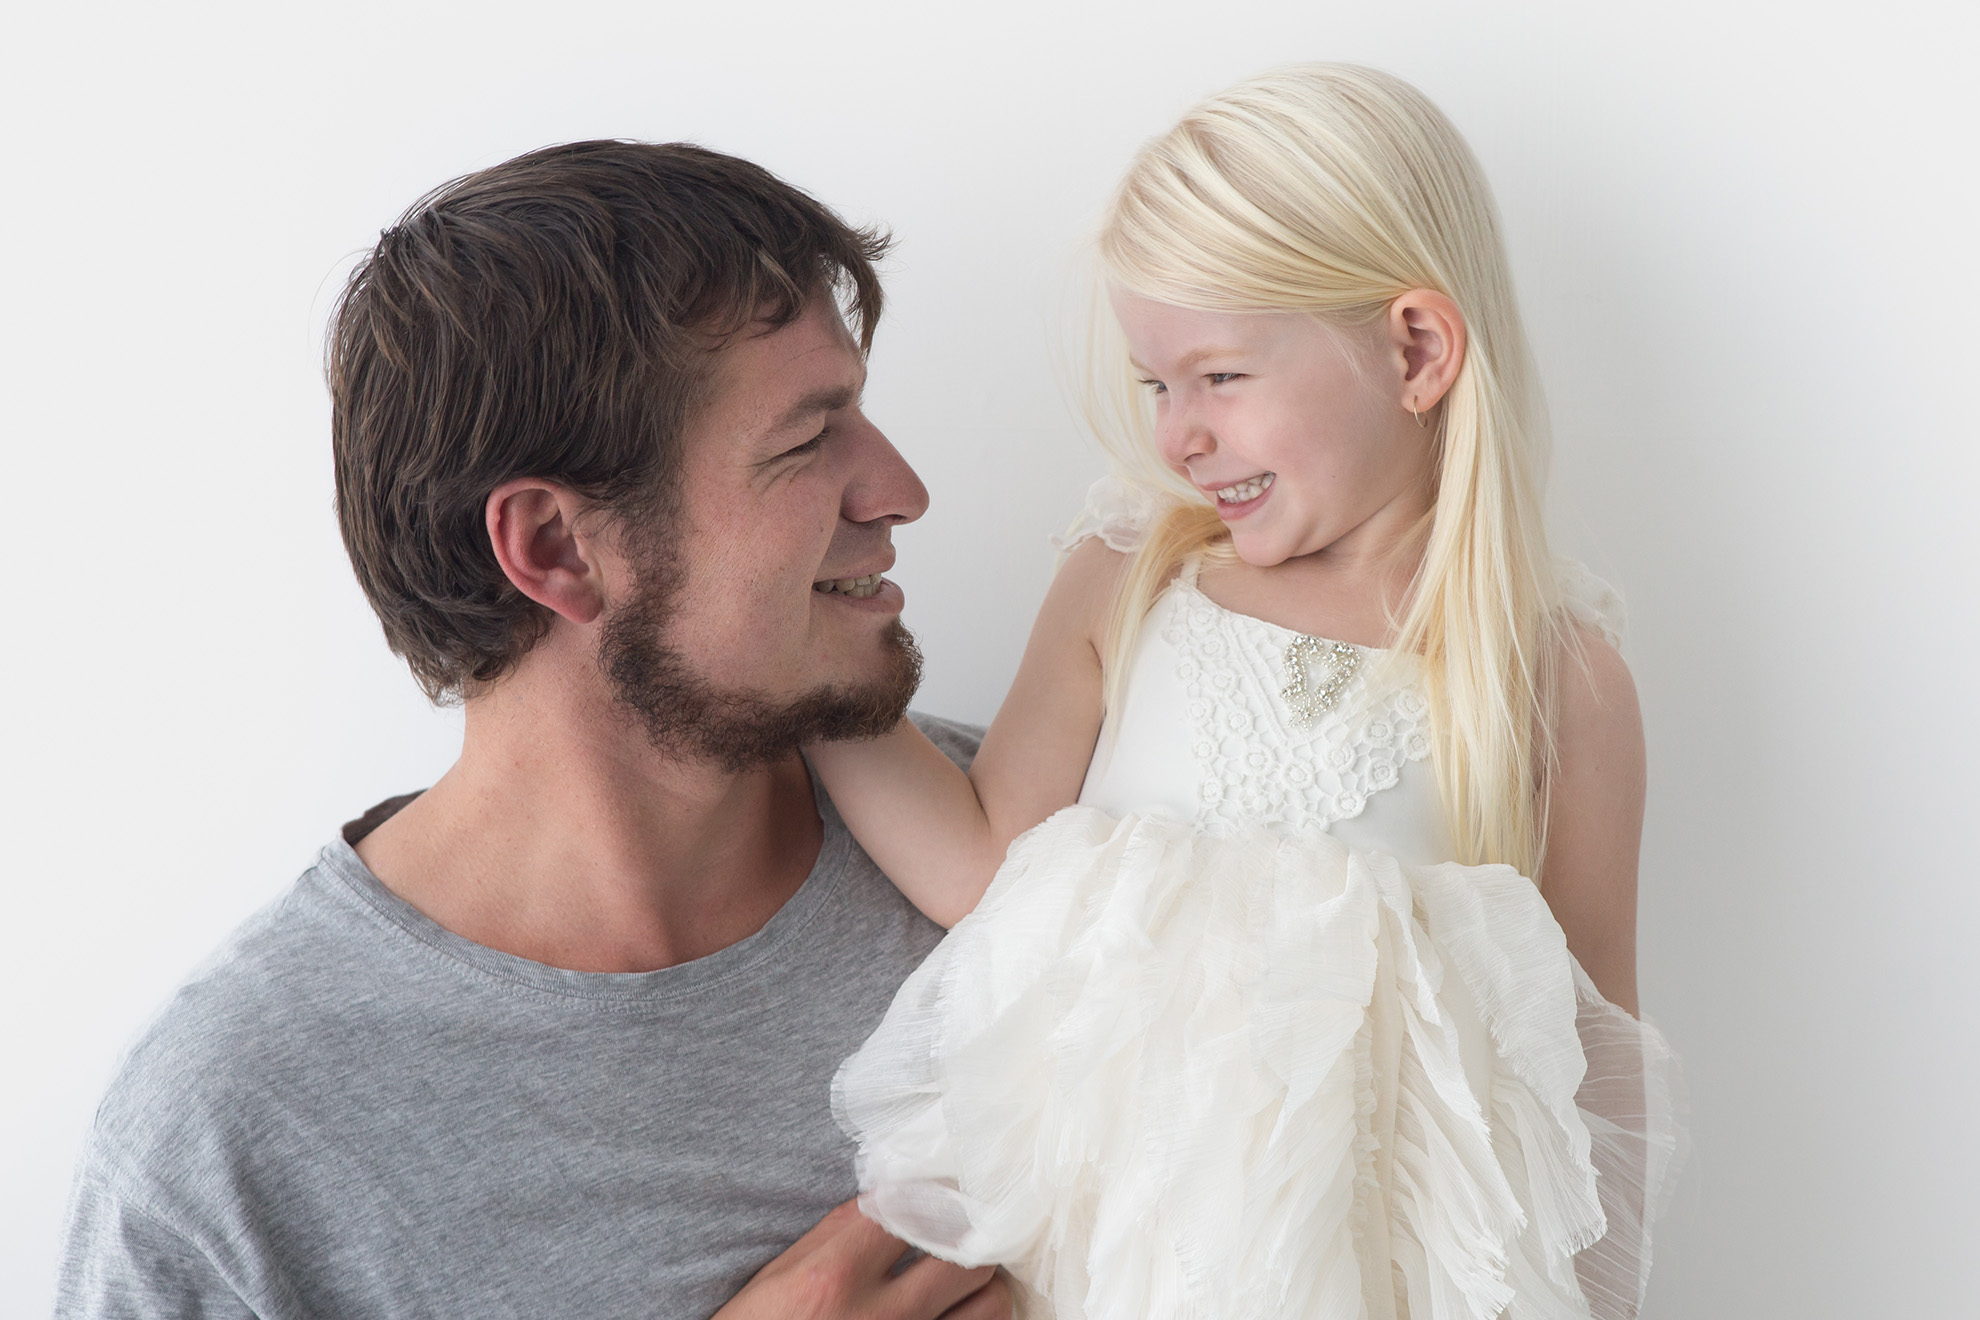 Daddy-and-me-photo-shoot.jpg